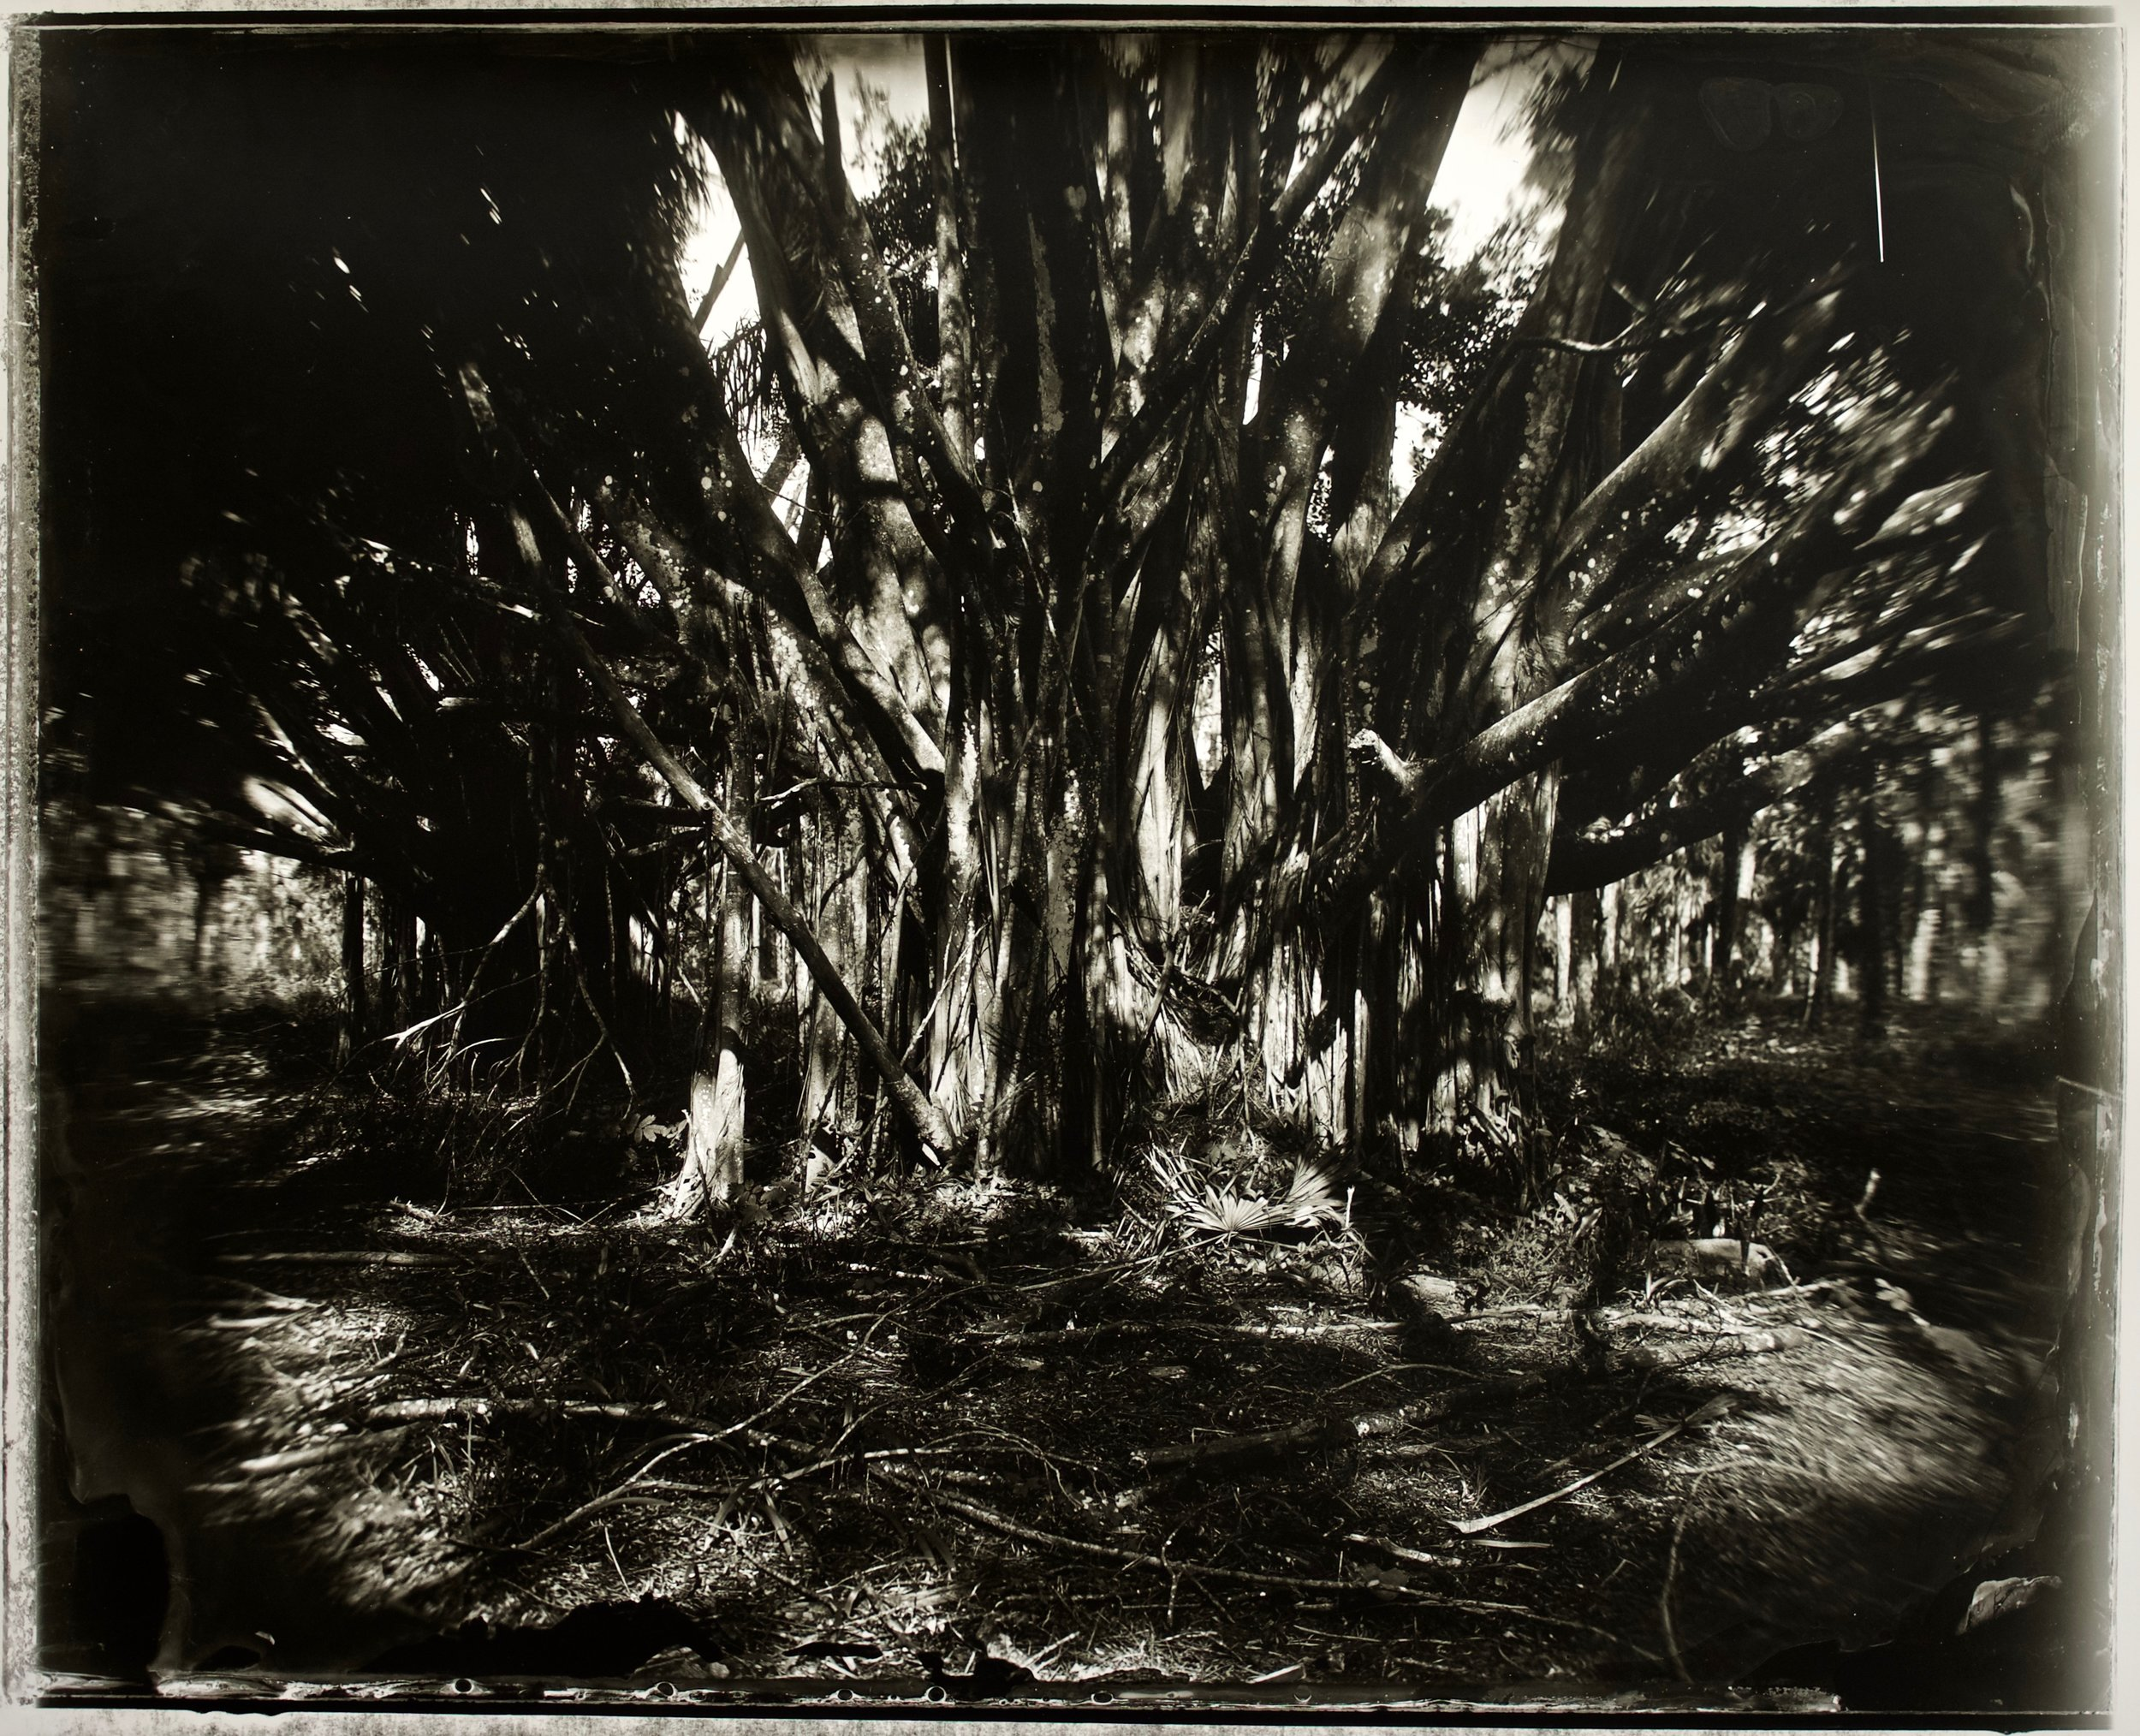 The Sacred and the Mundane 36 in. x 29 in., collodian negative hand printed on Fomatone paper, 2018. #2018-12.jpg